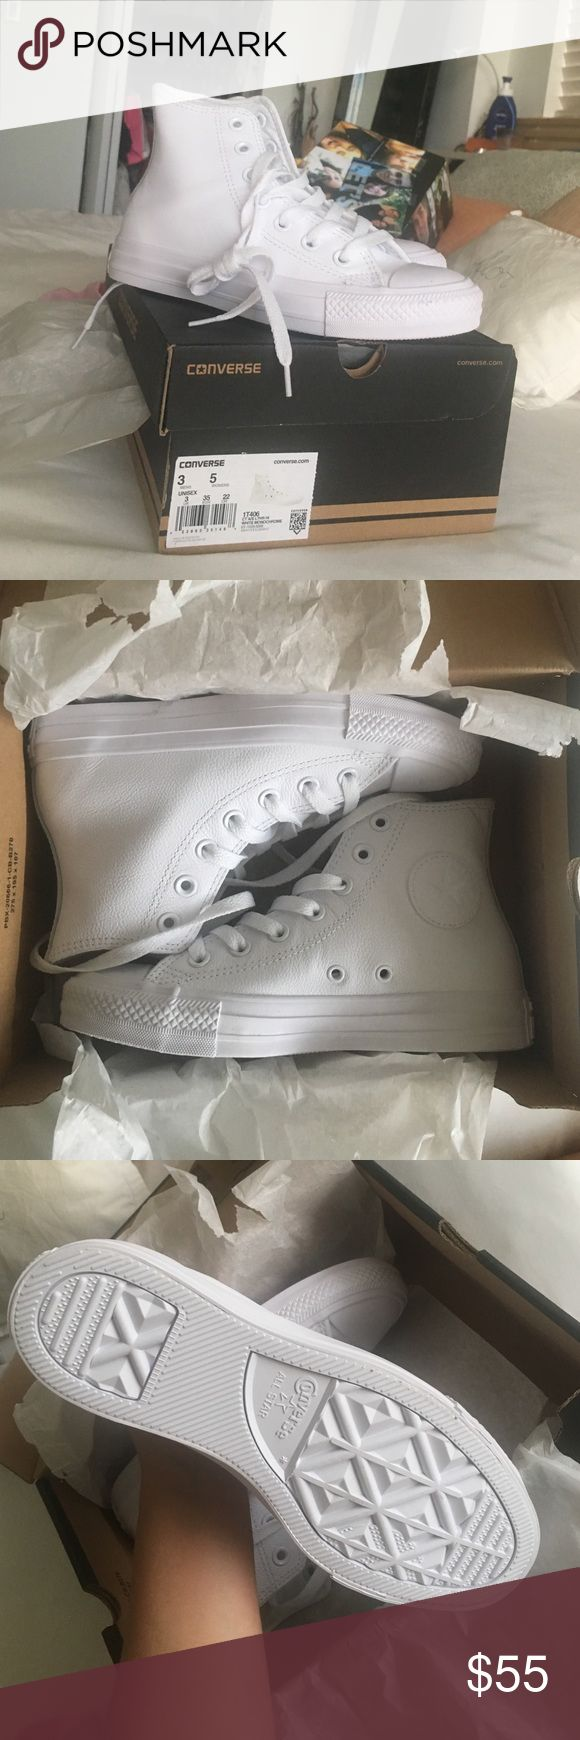 NEW IN BOX All white leather converse all star Brand new, in original packaging Converse Shoes Sneakers